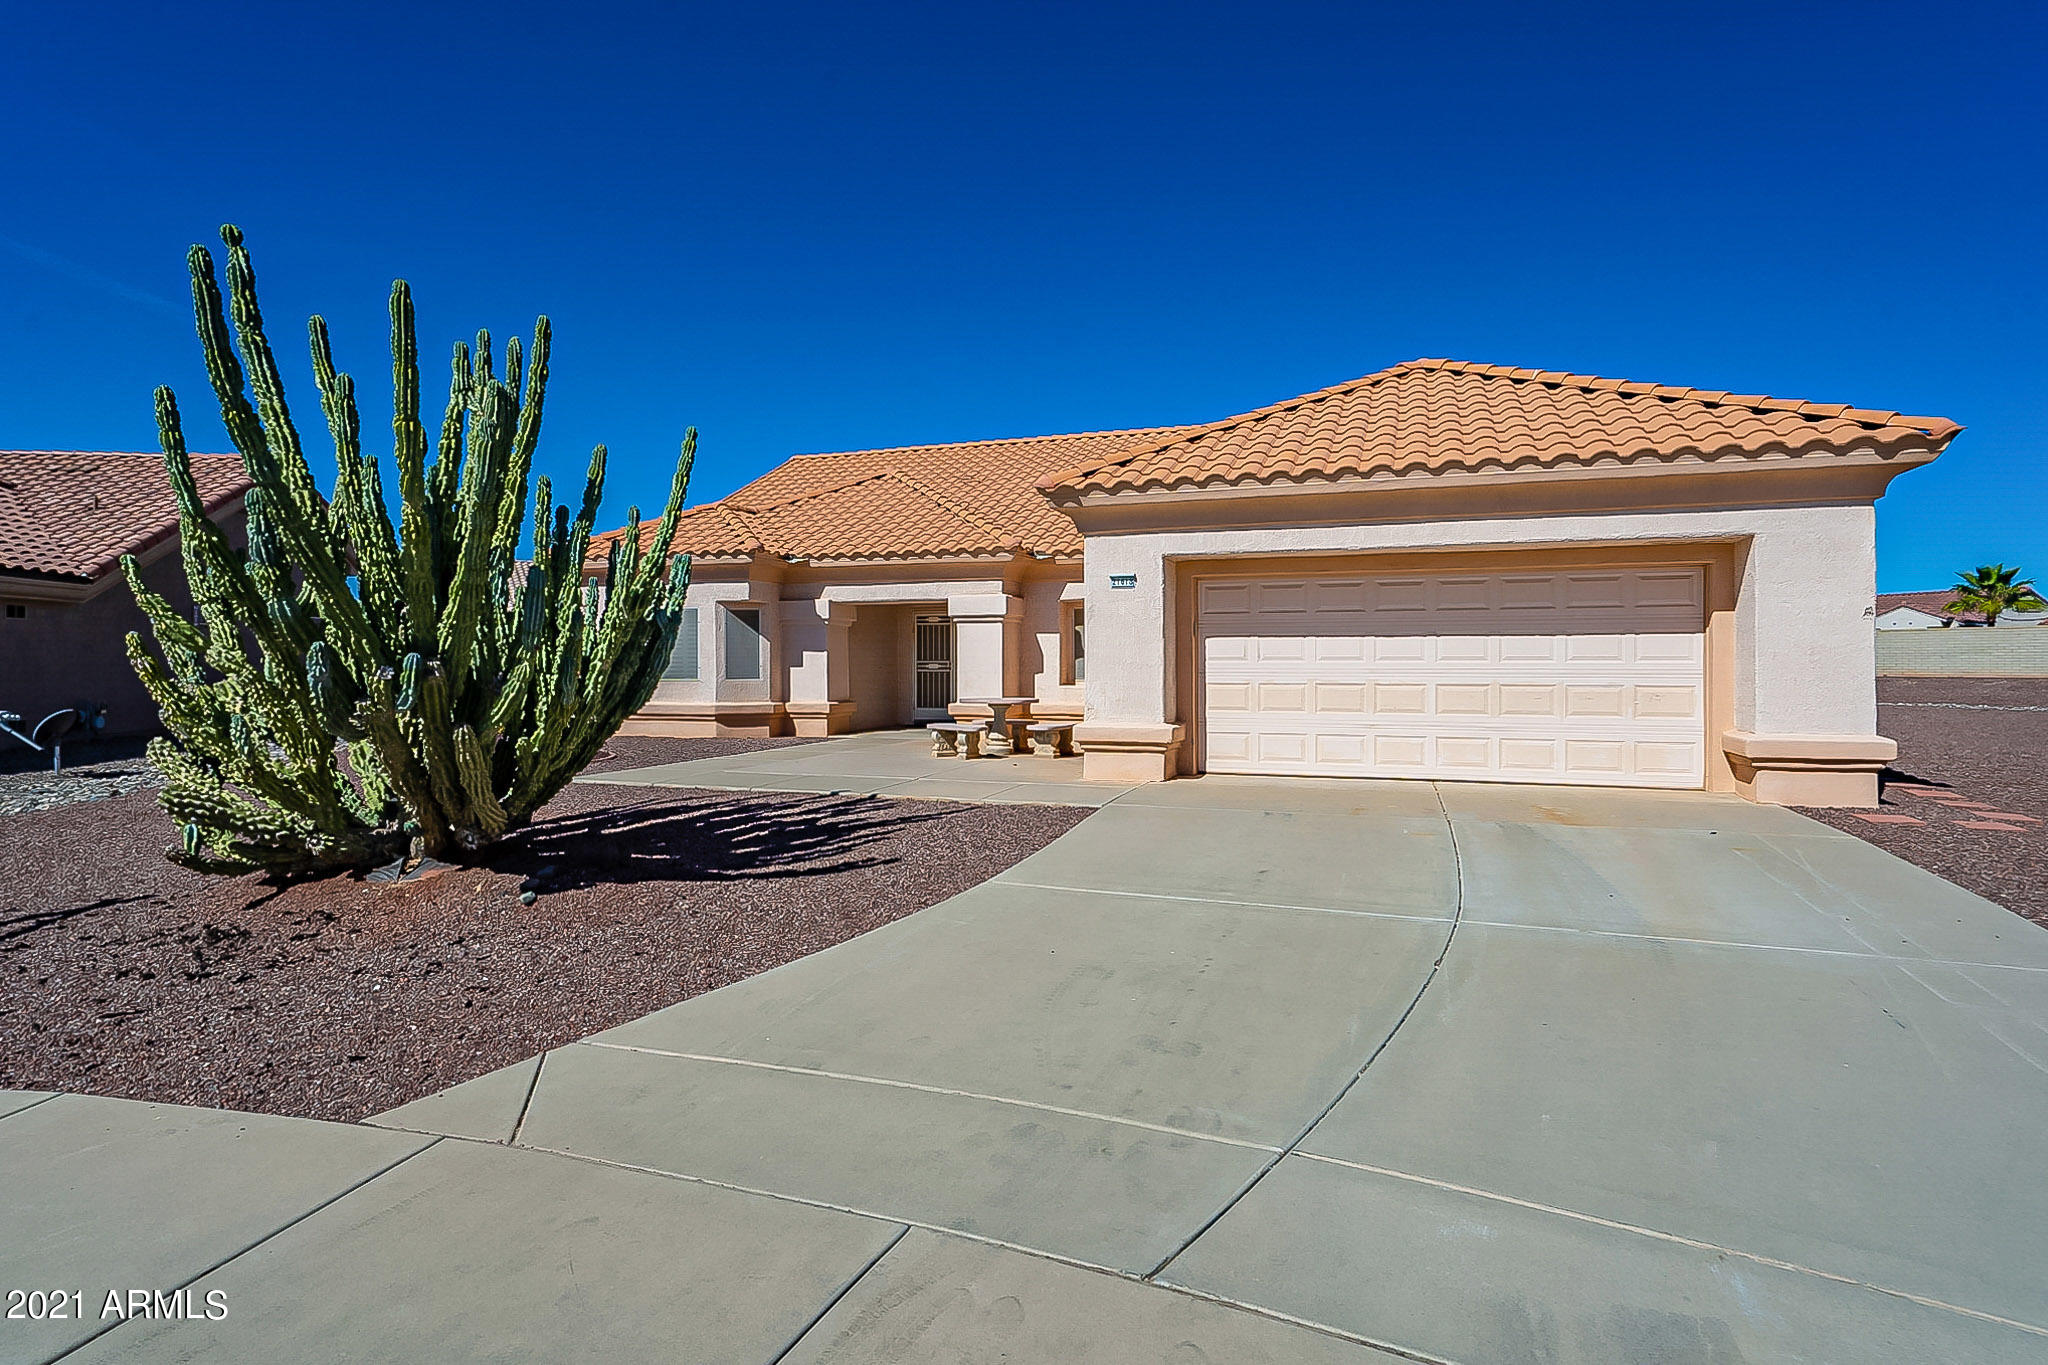 21618 N 160TH Lane, Sun City West, AZ 85375, 2 Bedrooms Bedrooms, ,Residential,For Sale,21618 N 160TH Lane,6201103